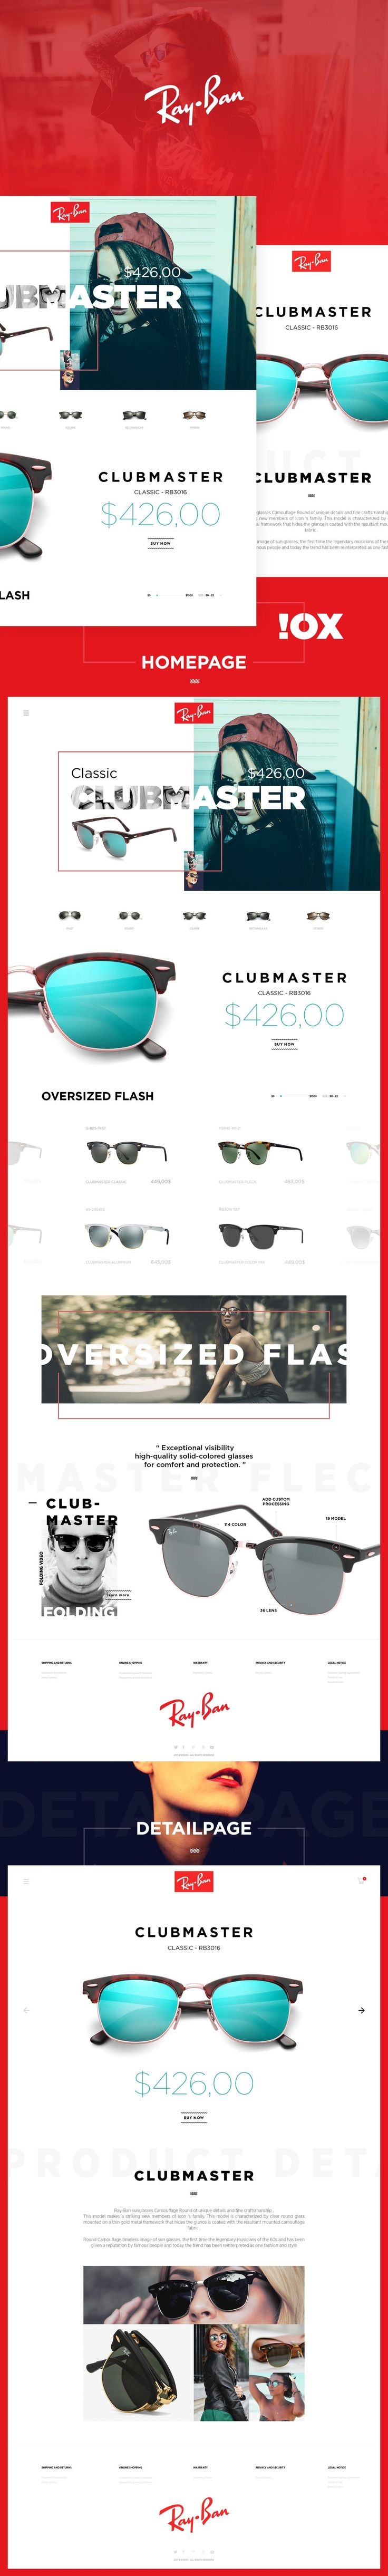 Ray-Ban Clubmaster Concept on Behance